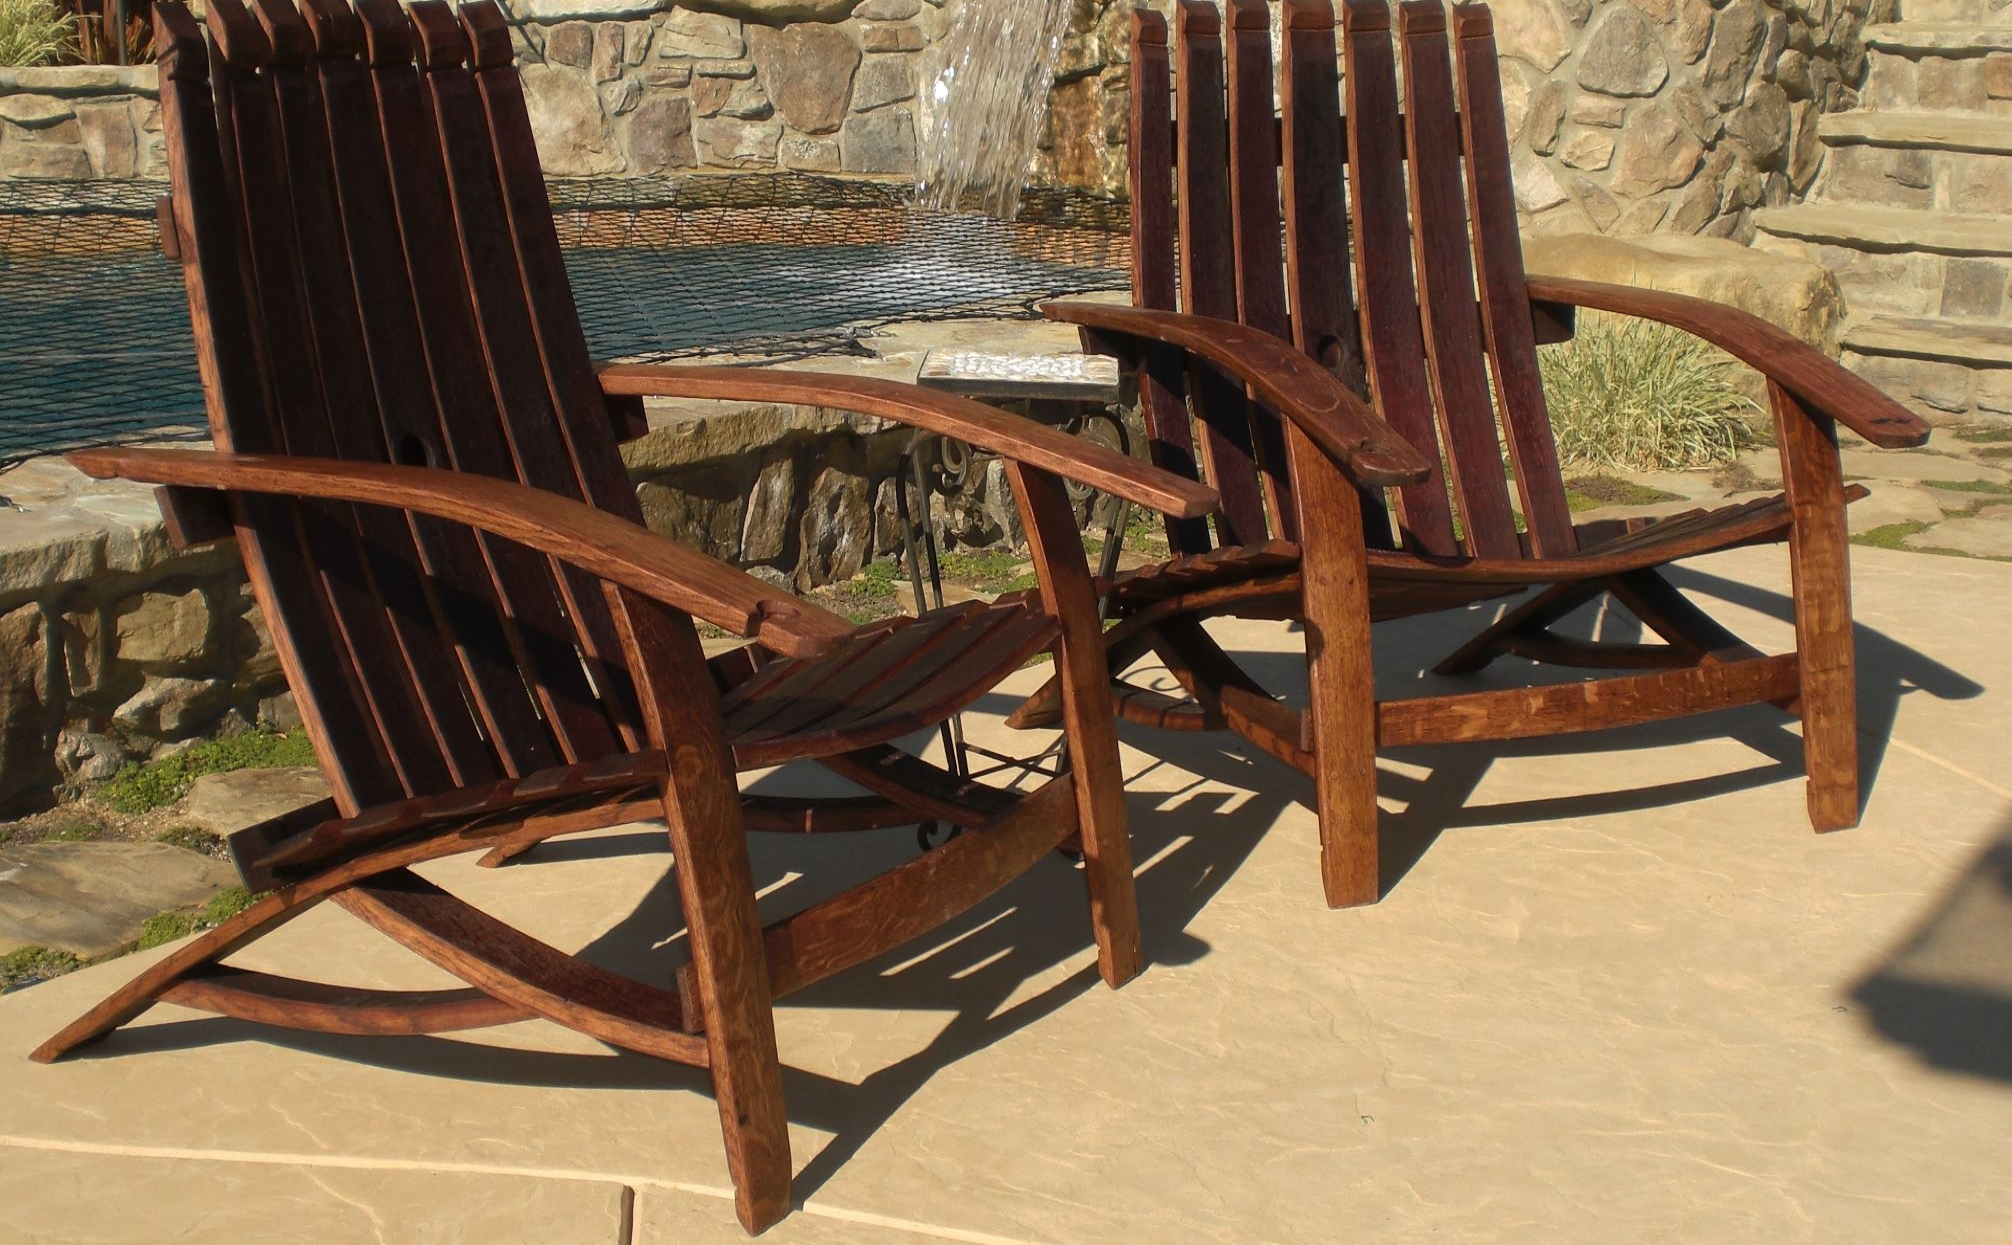 Handcrafted Lounge Chairs with Wine Holders